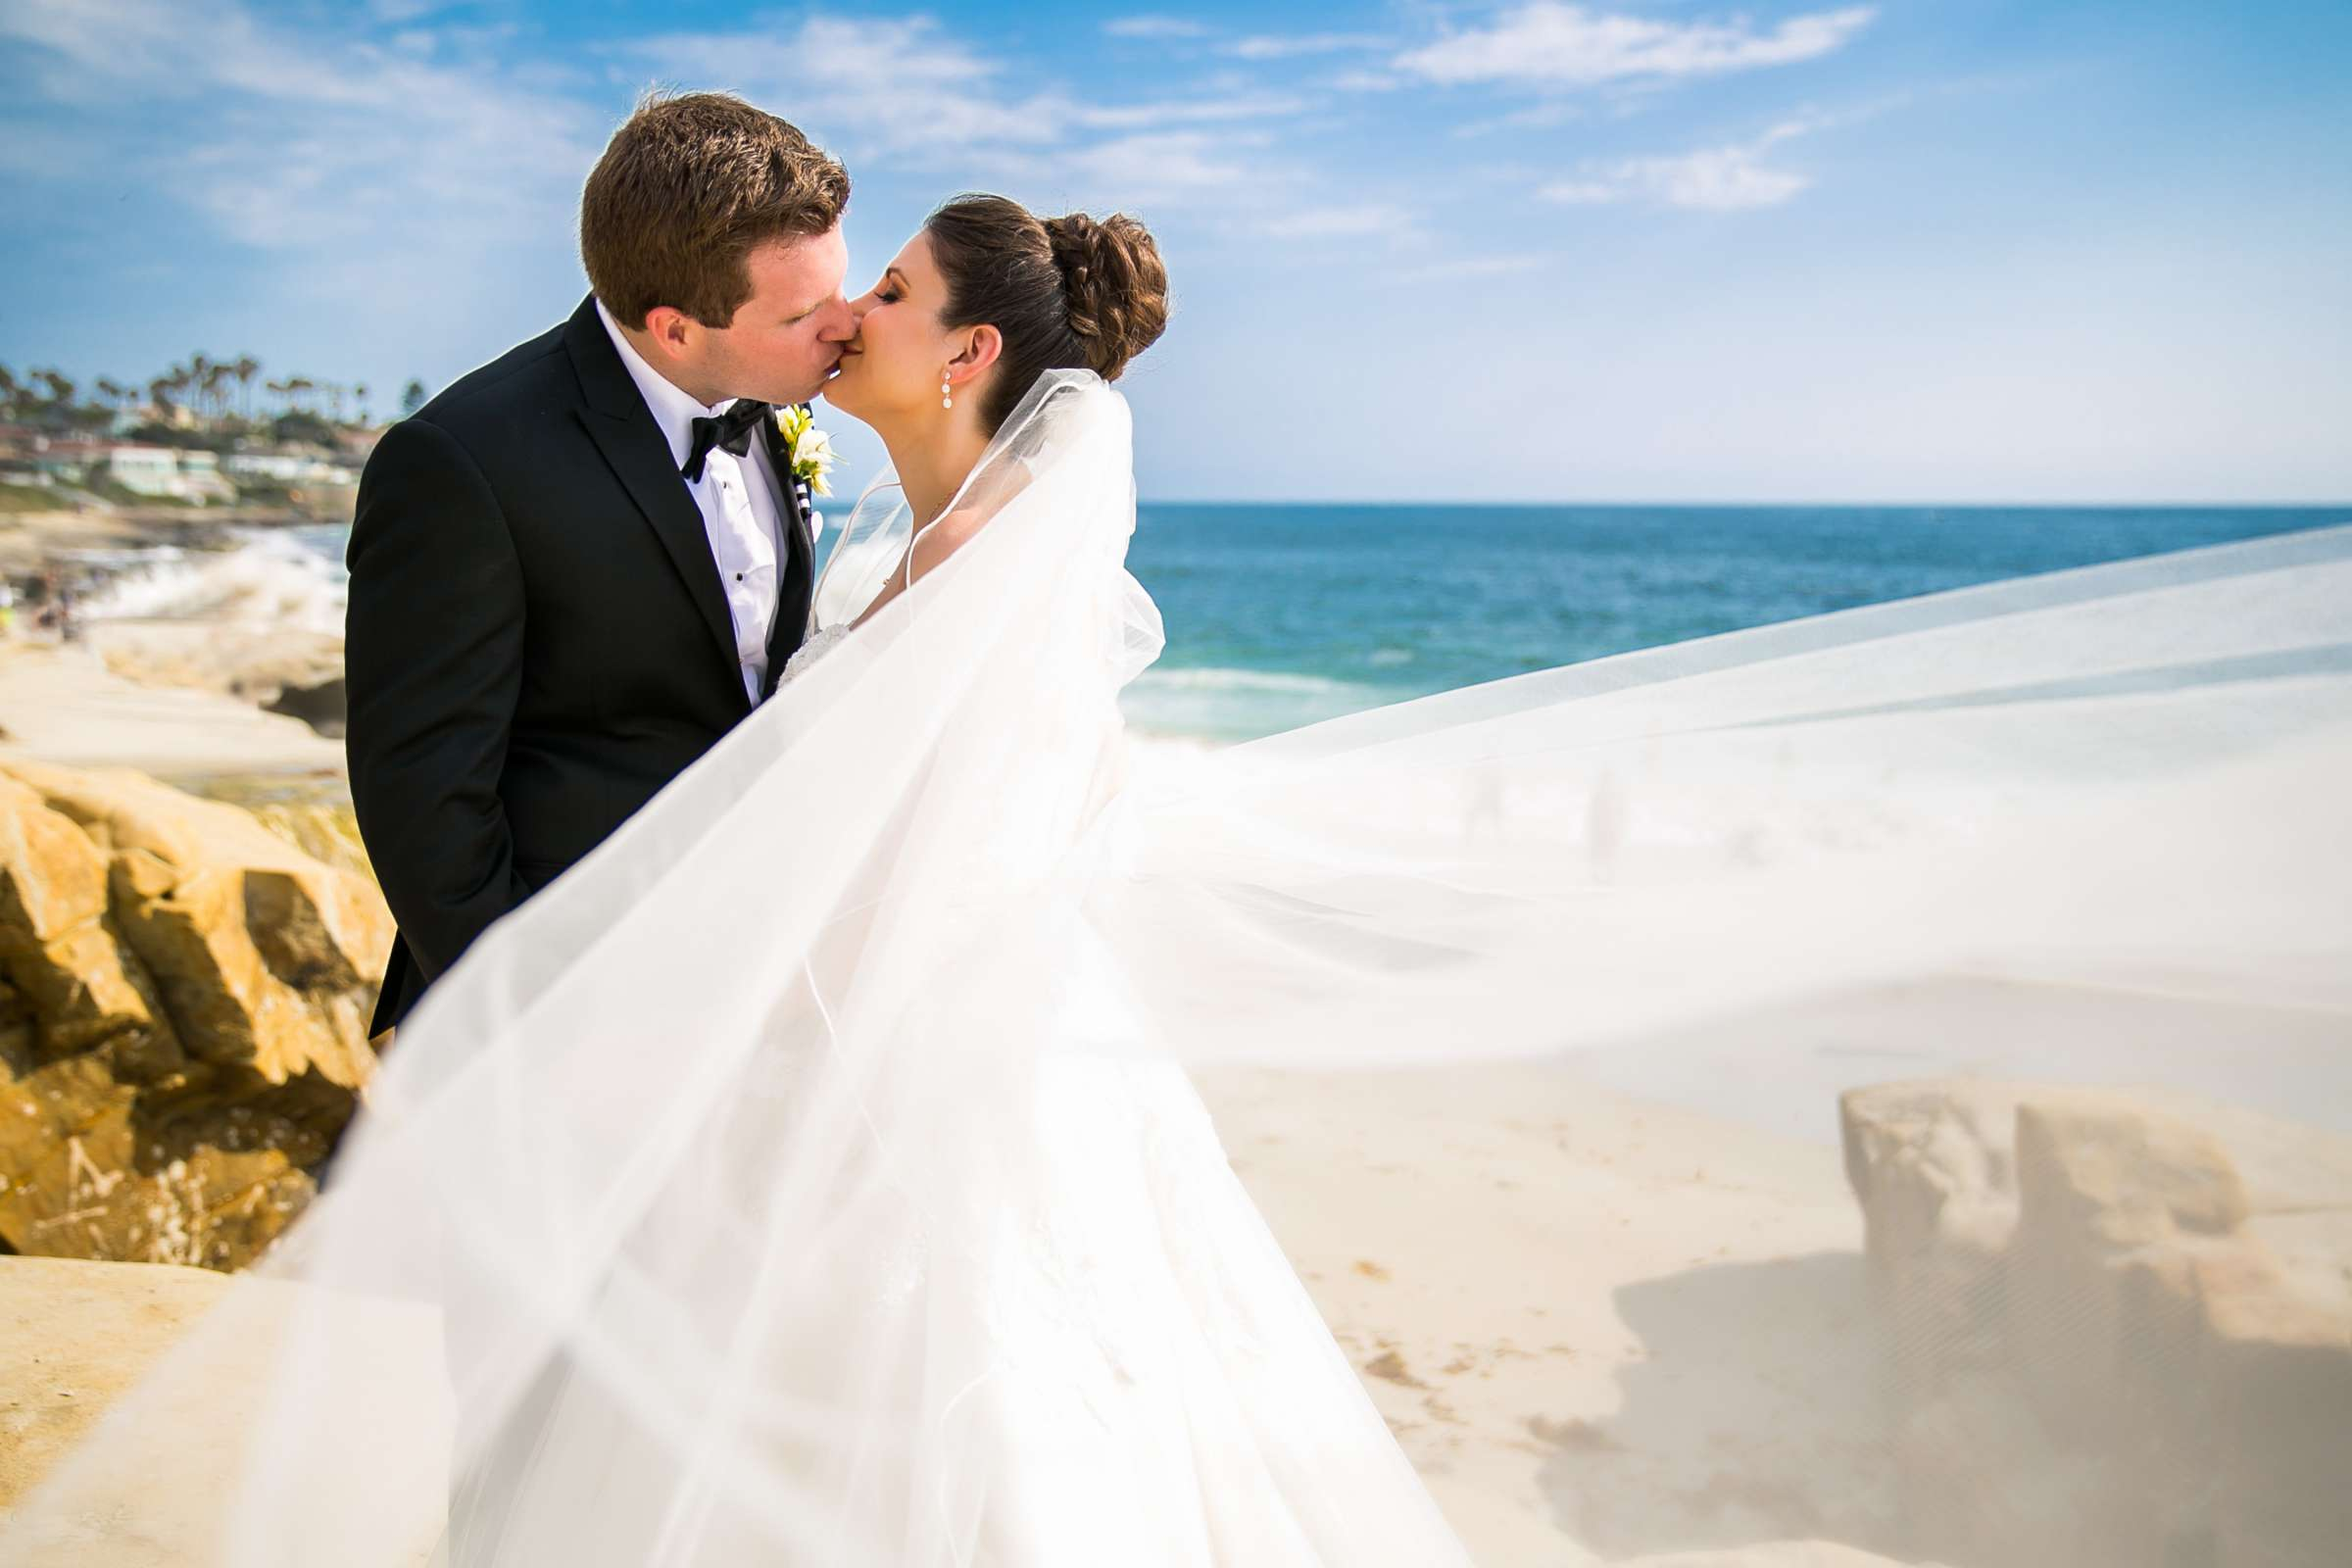 Bahia Hotel Wedding coordinated by I Do Weddings, Meredith and Jack Wedding Photo #10 by True Photography